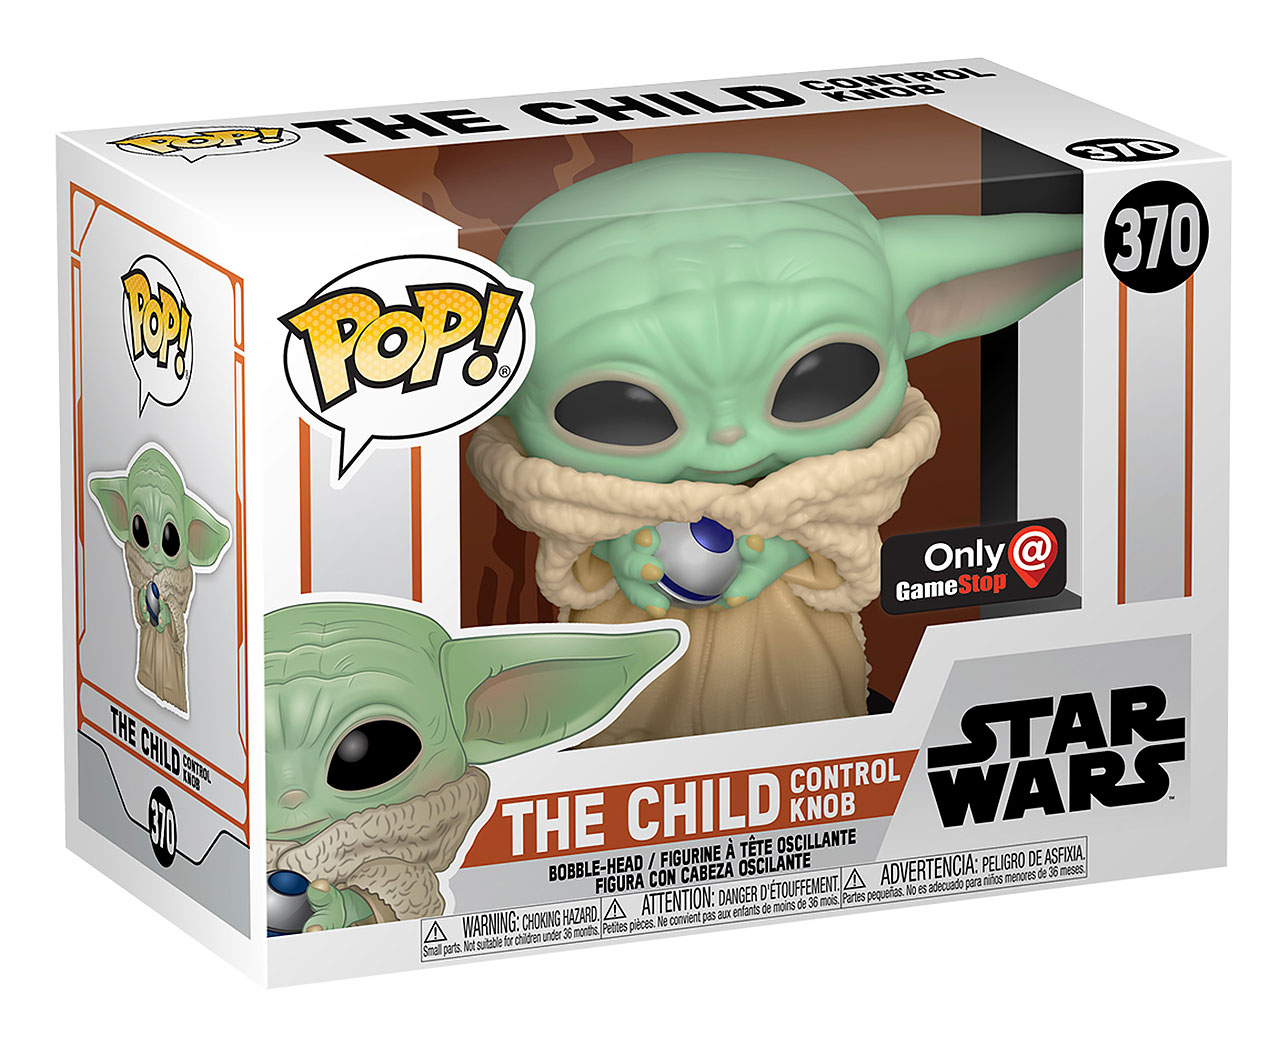 The Child Pop! box